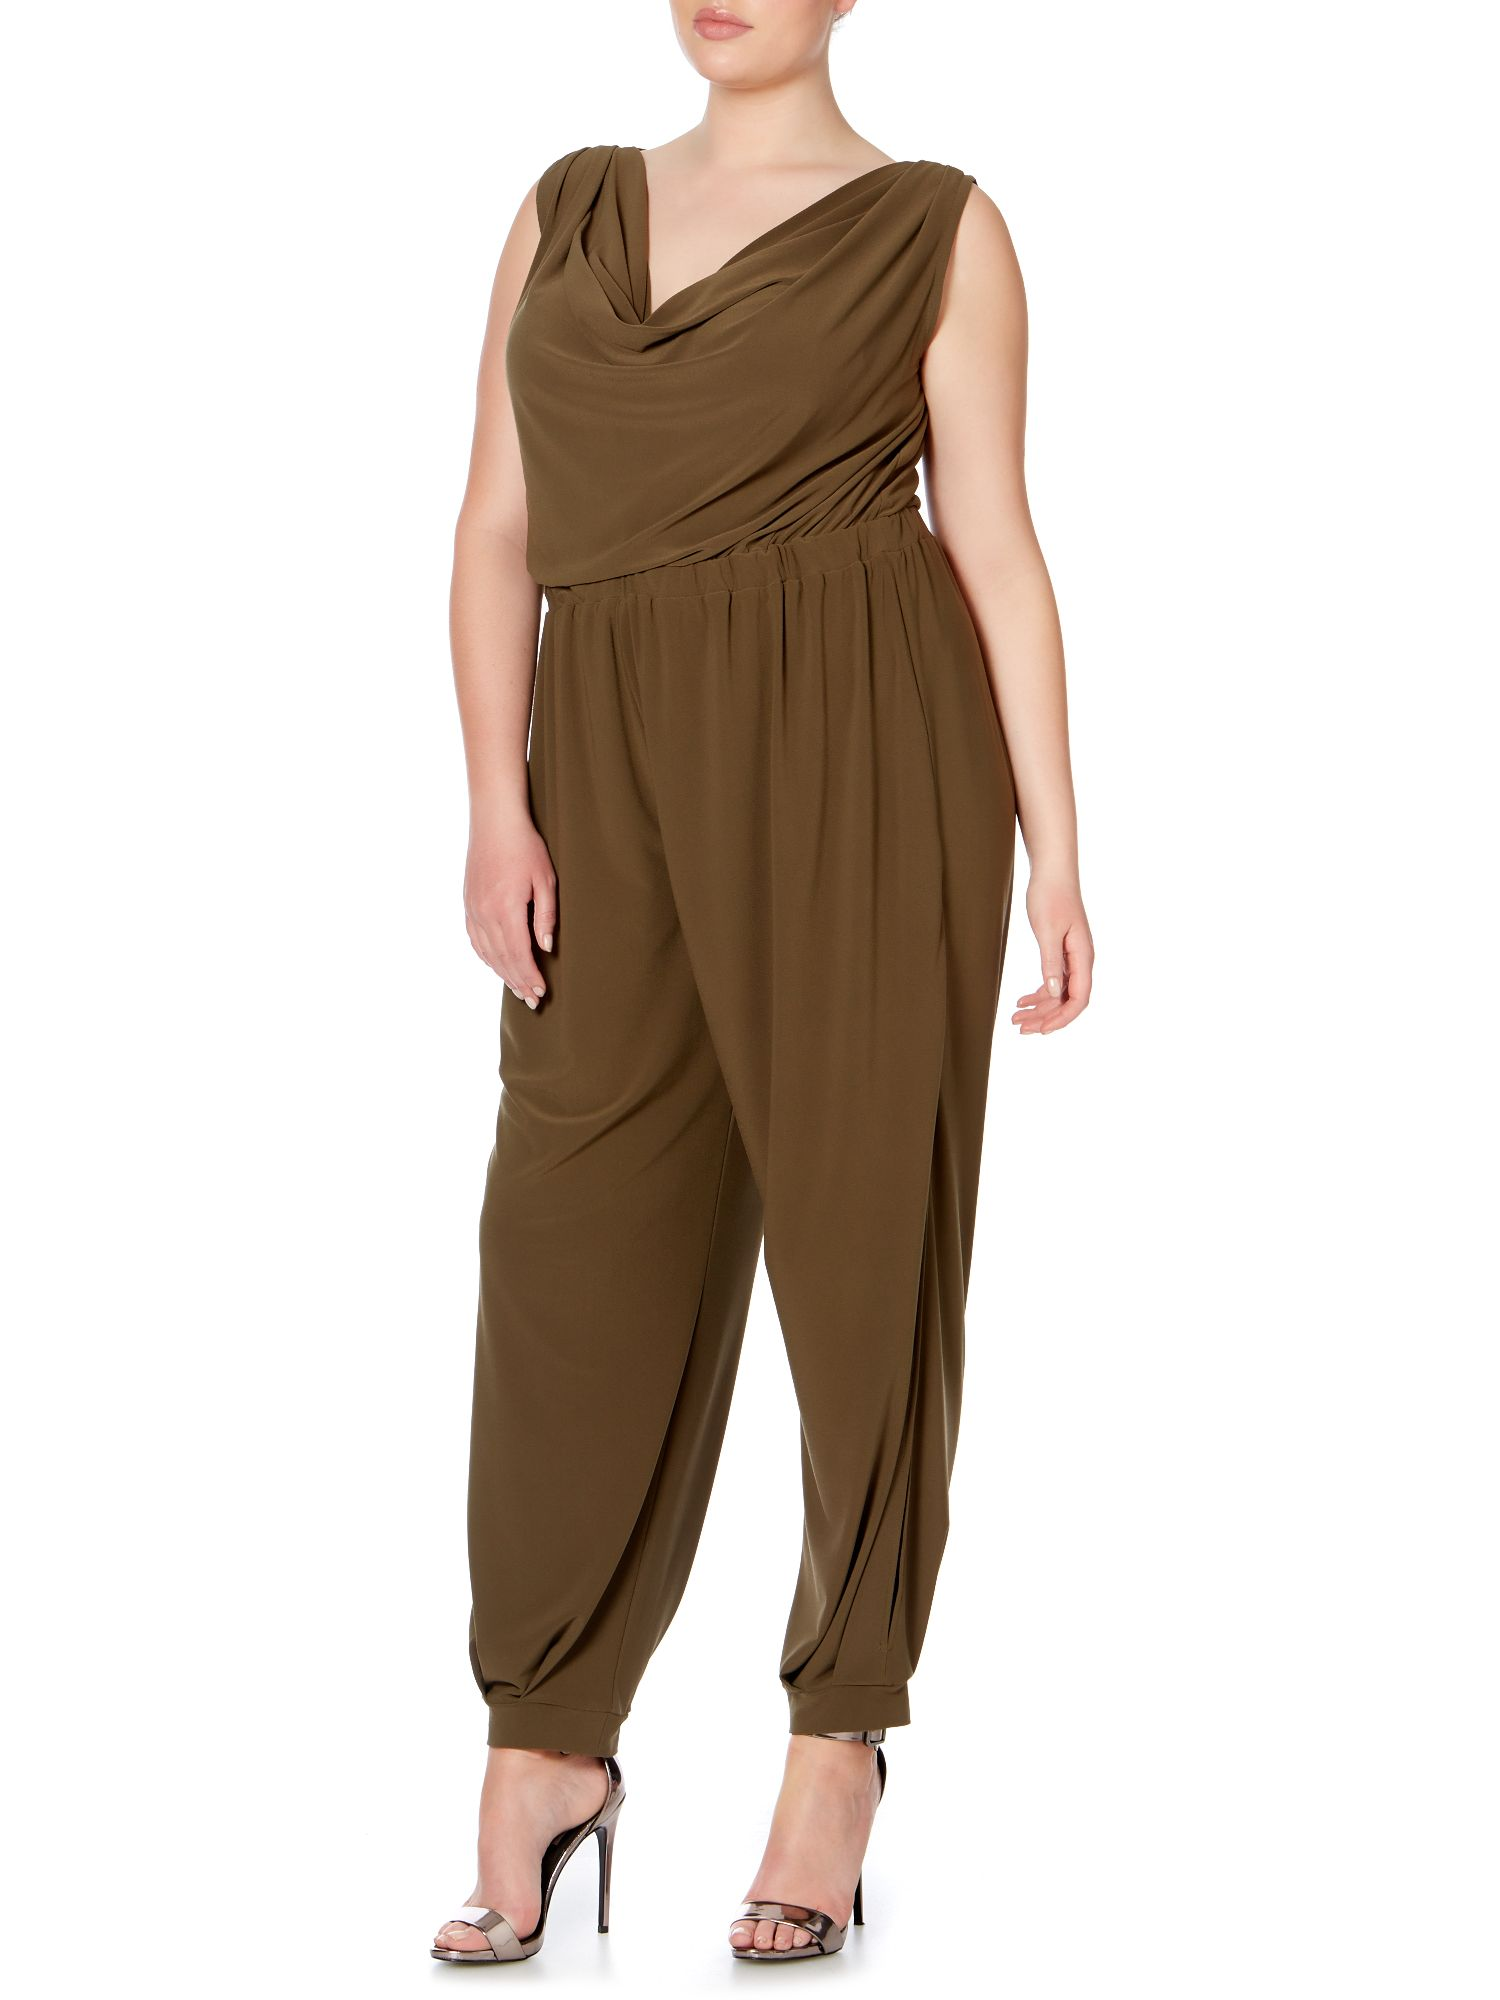 Cowl neck jumpsuit